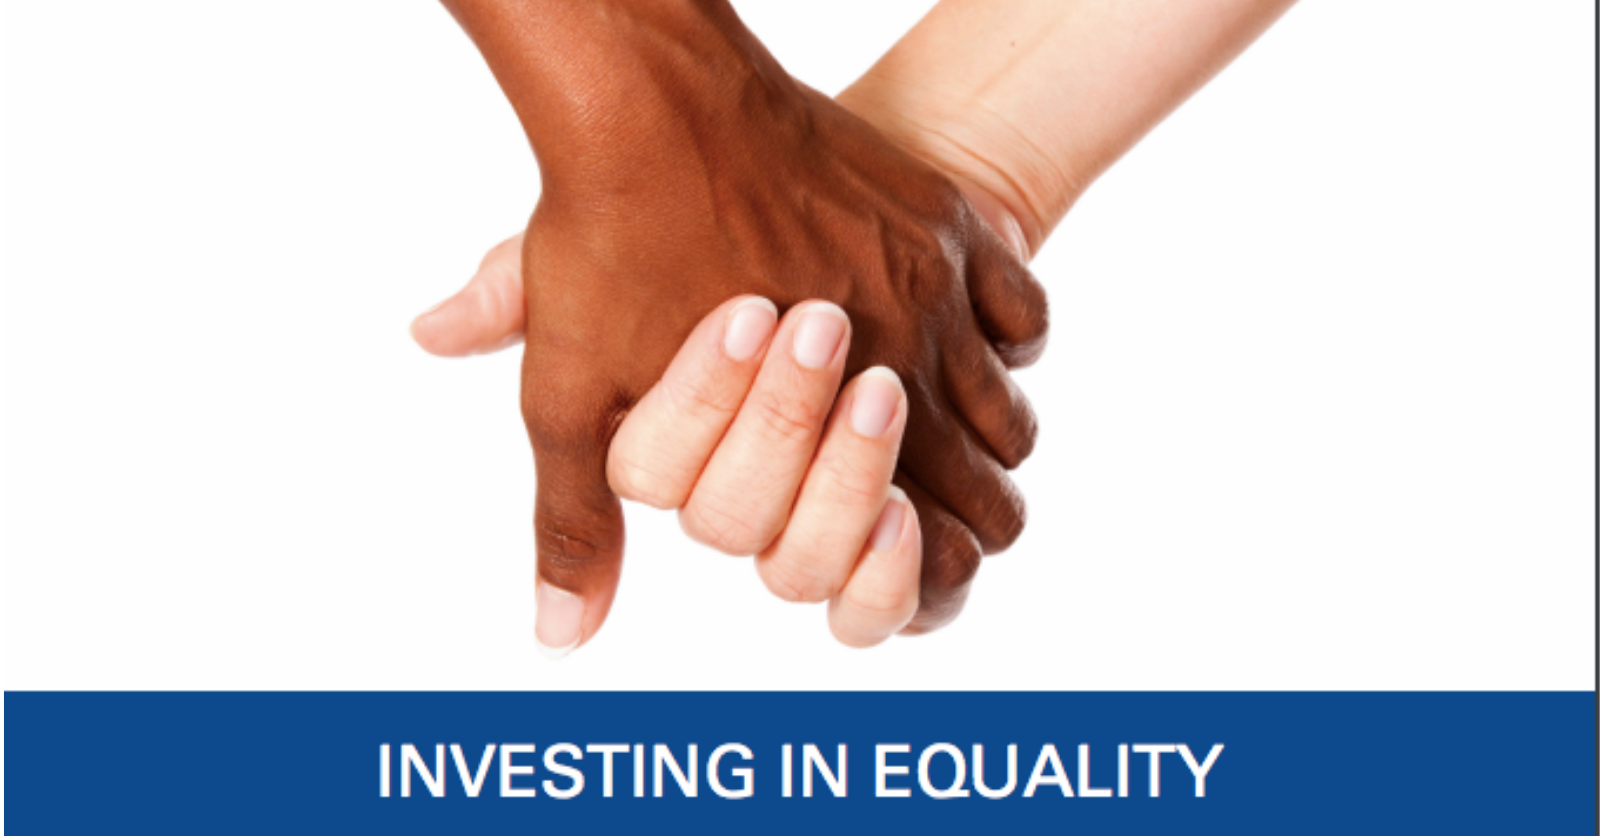 Croatan Institute Releases New White Paper on Investing for LGBT Equality